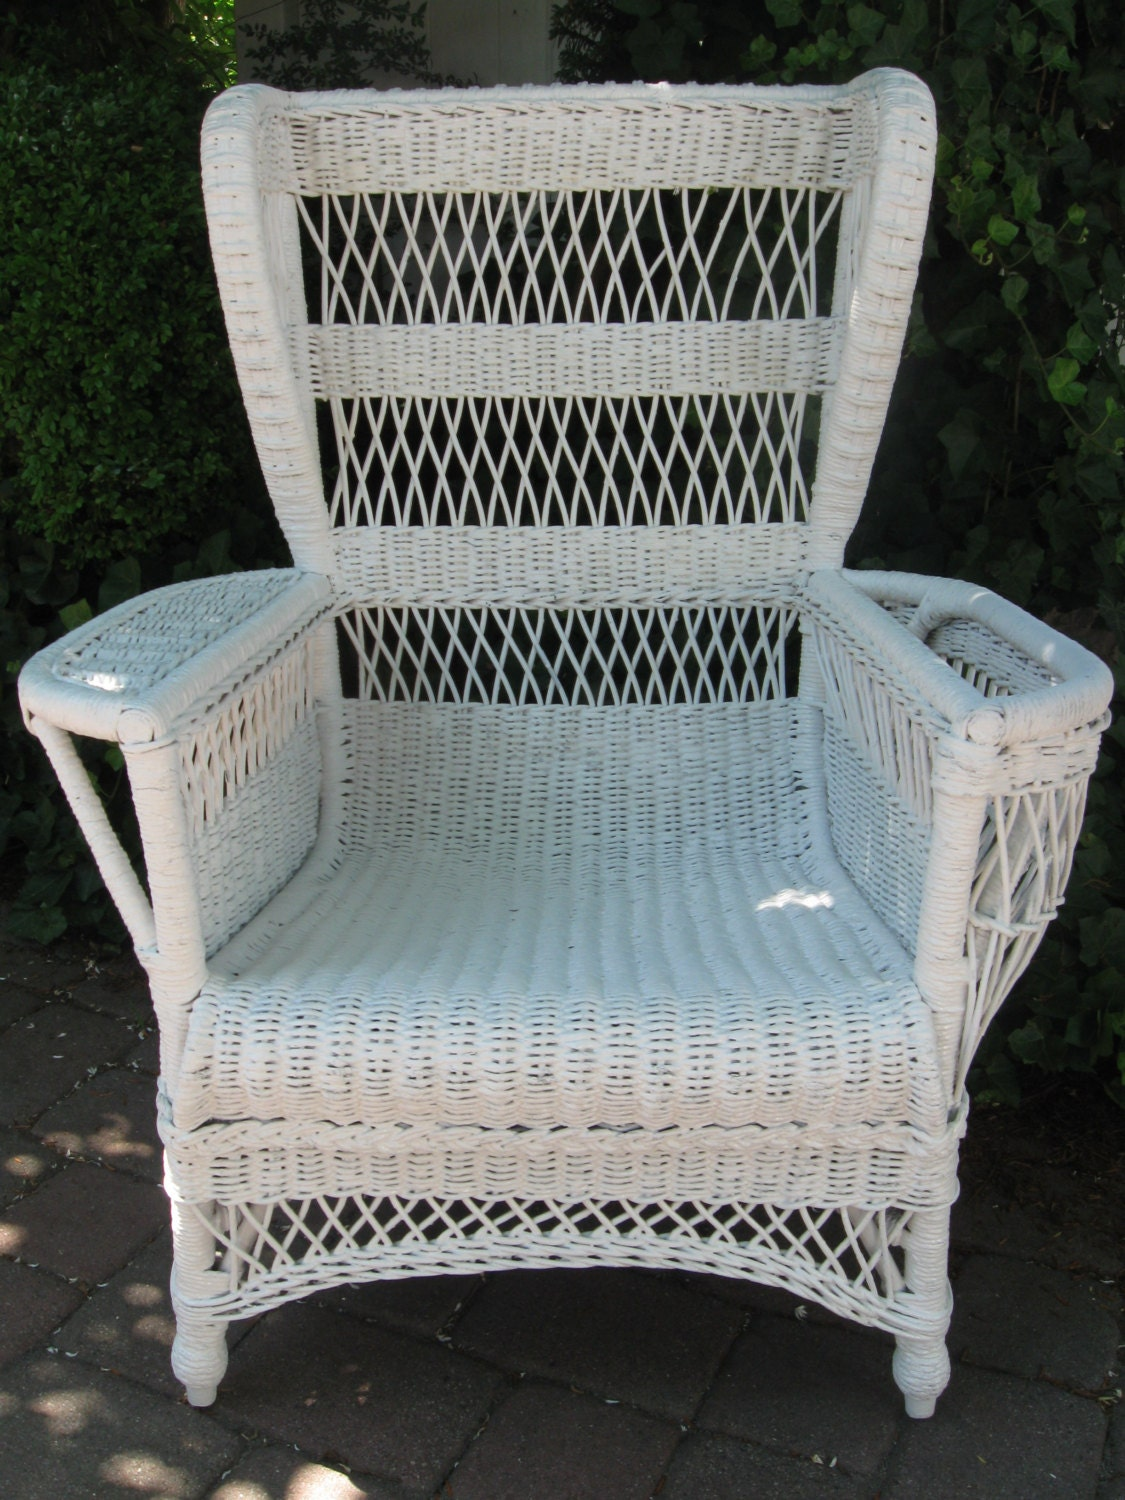 Vintage Bar Harbor Wicker Furniture